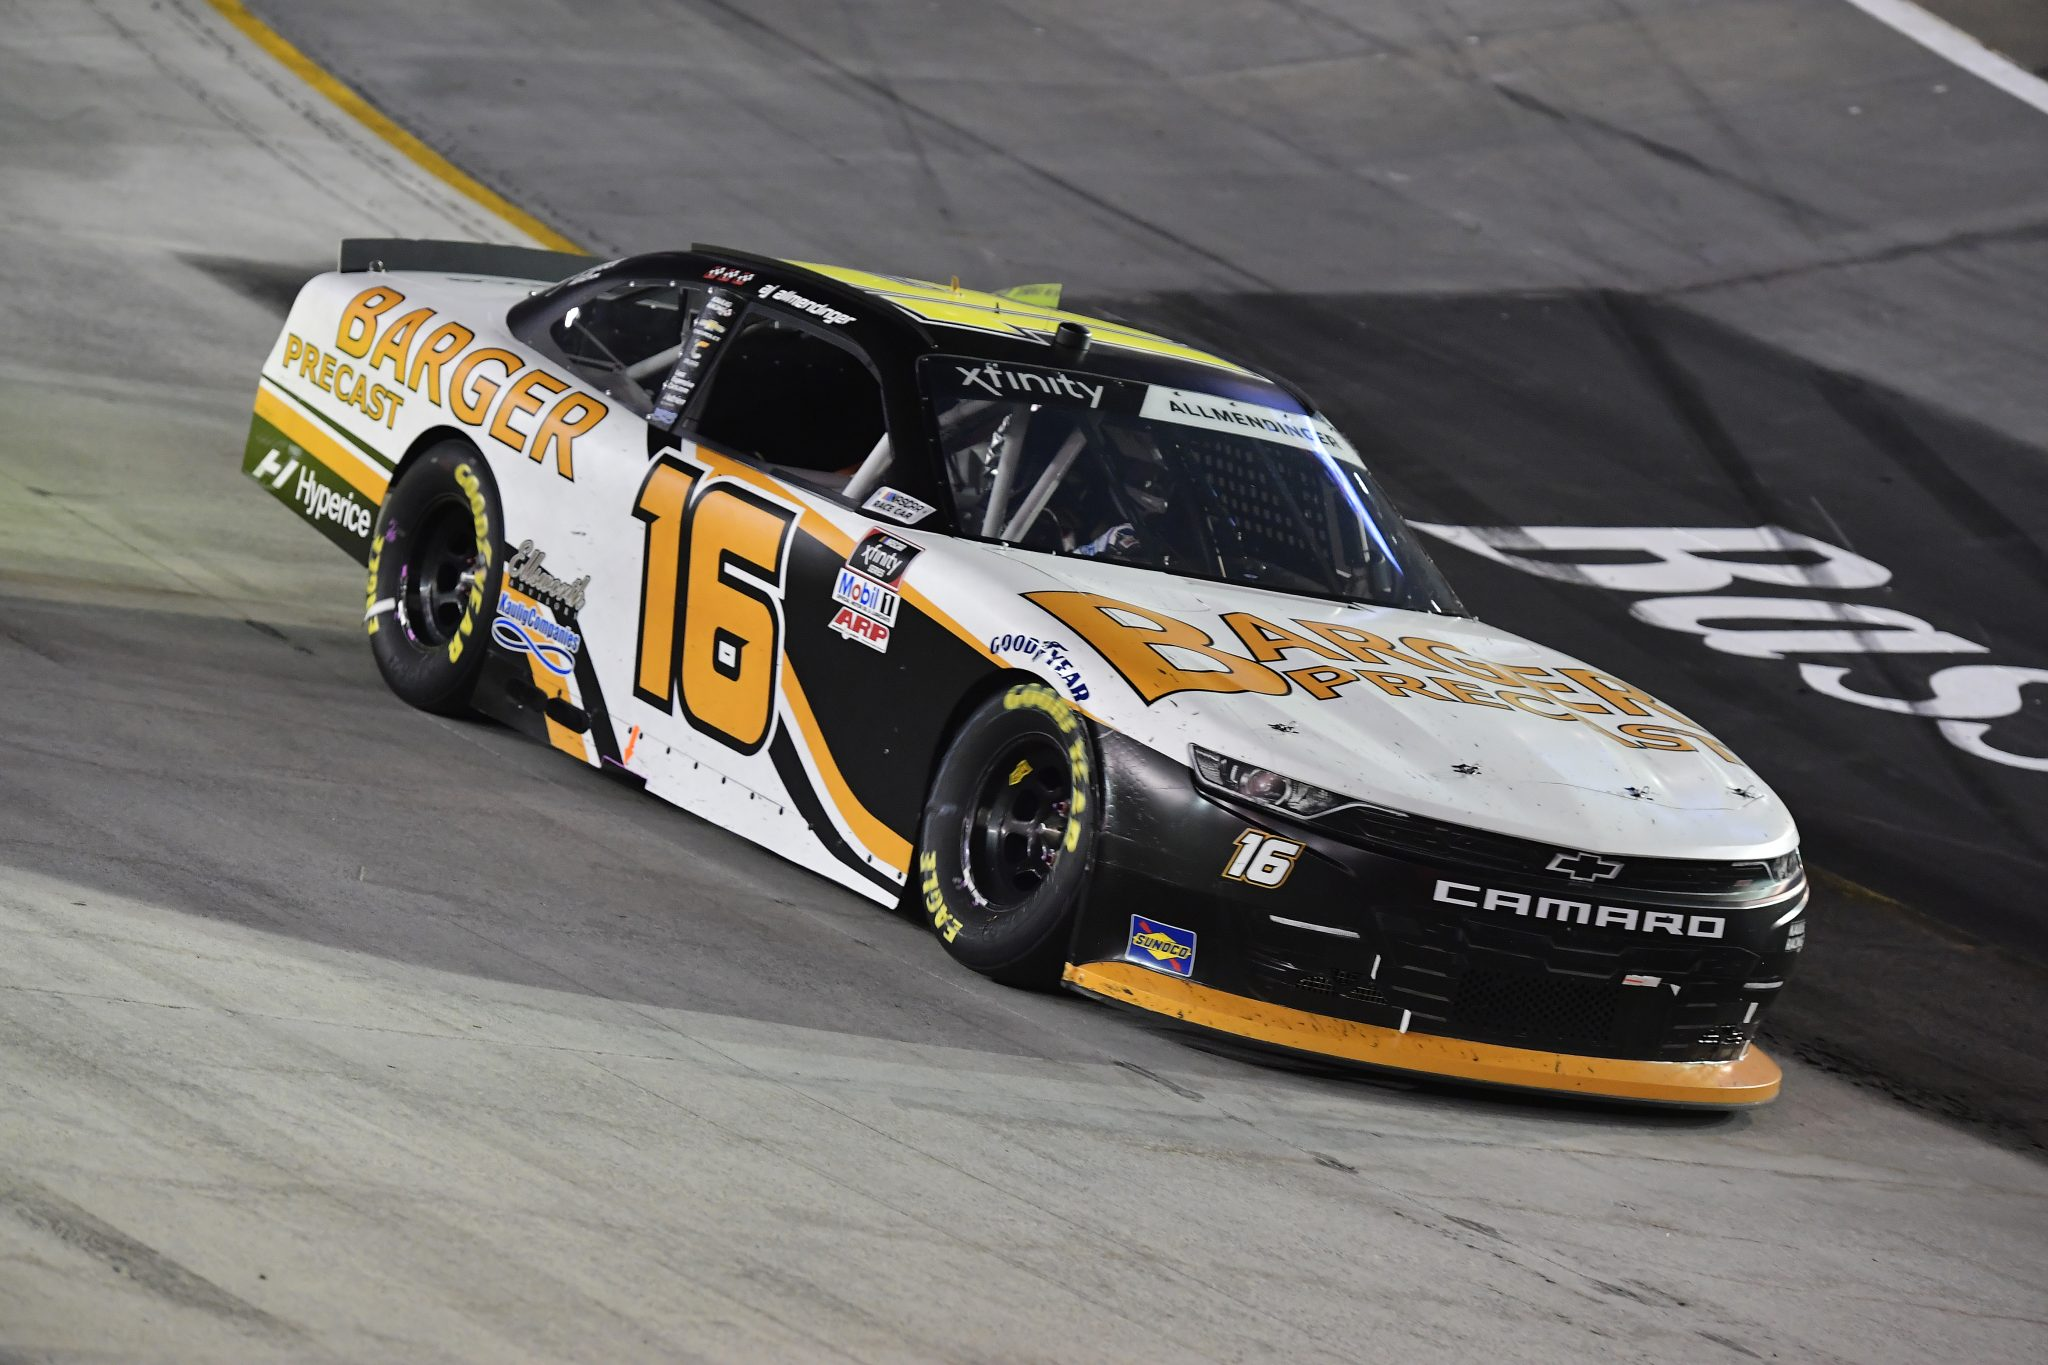 BRISTOL, TENNESSEE - SEPTEMBER 17: AJ Allmendinger, driver of the #16 Barger Precast Chevrolet, drives during the NASCAR Xfinity Series Food City 300 at Bristol Motor Speedway on September 17, 2021 in Bristol, Tennessee. (Photo by Logan Riely/Getty Images) | Getty Images